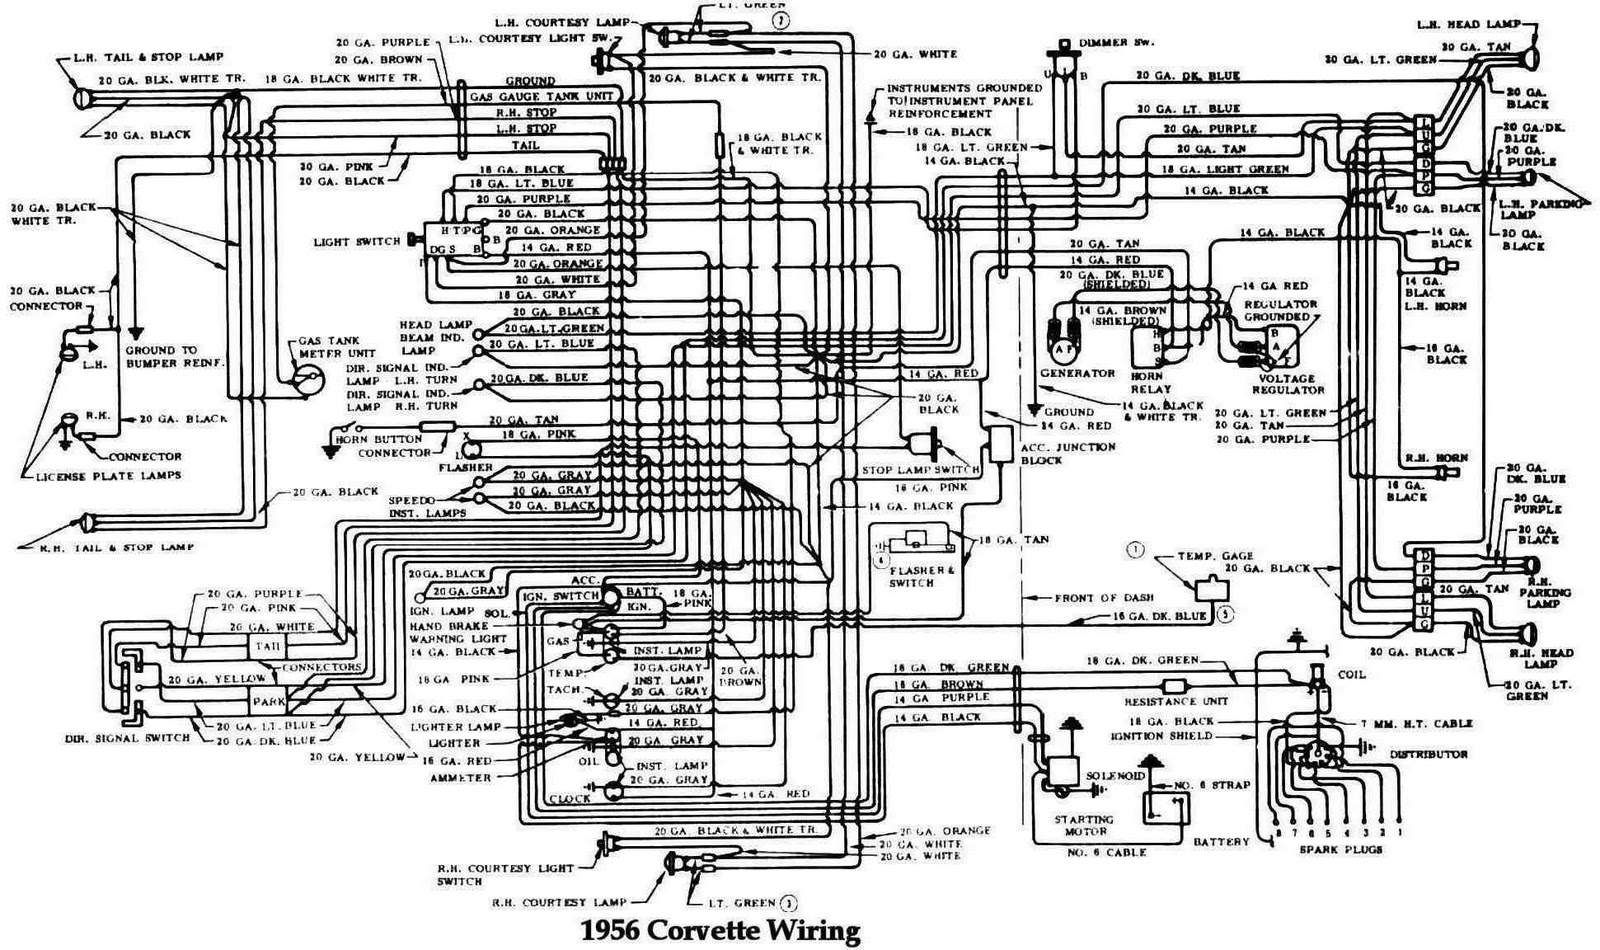 1956 Ford Car Wiring Diagram Schematic Doing The Crust Layers 20 Images Rh Byrdbarnhouse Com Chevrolet Corvette